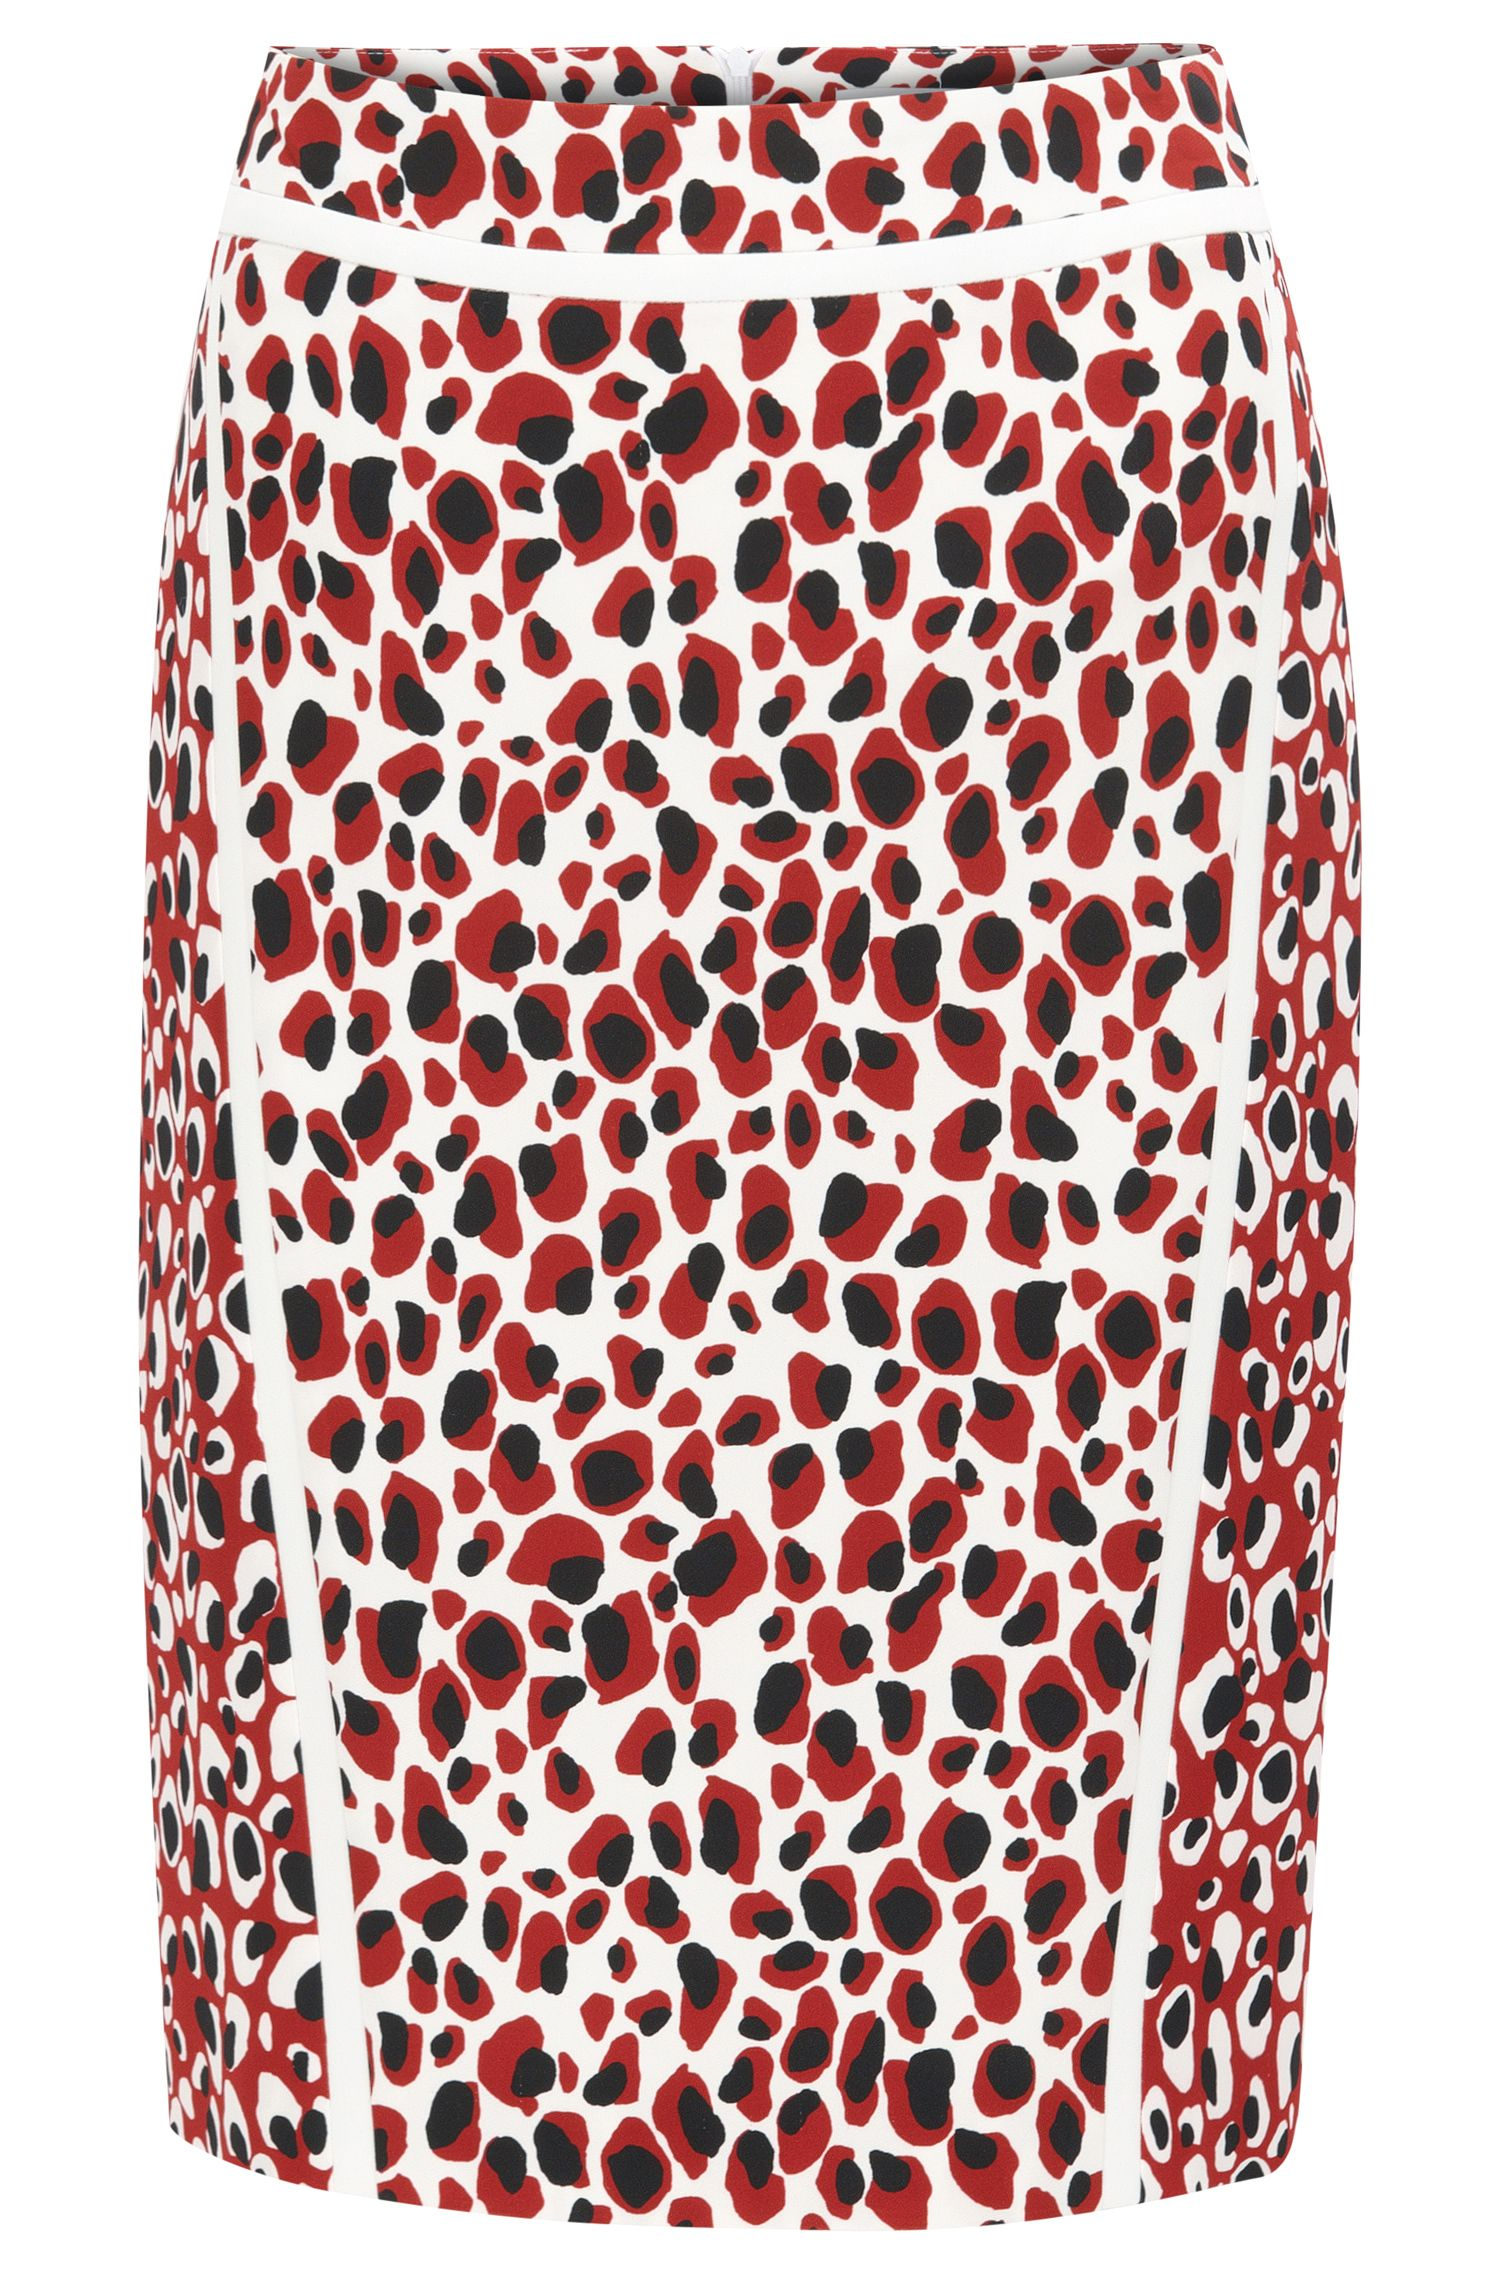 Slim-fit pencil skirt in mixed leopard print